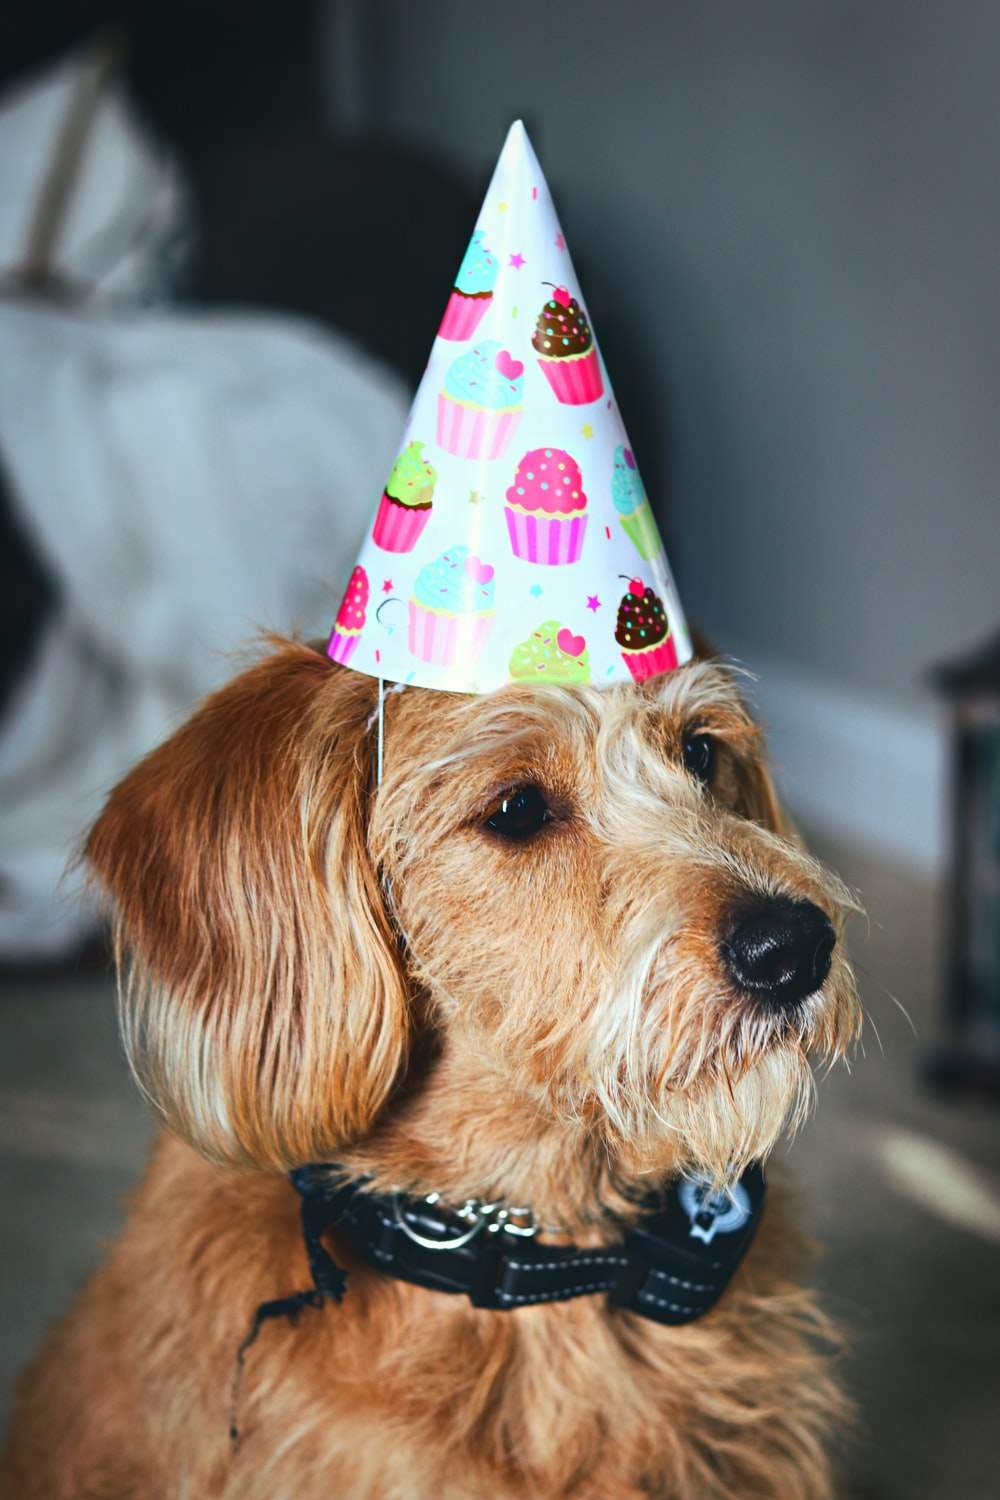 medium-coated brown dog wearing party hat